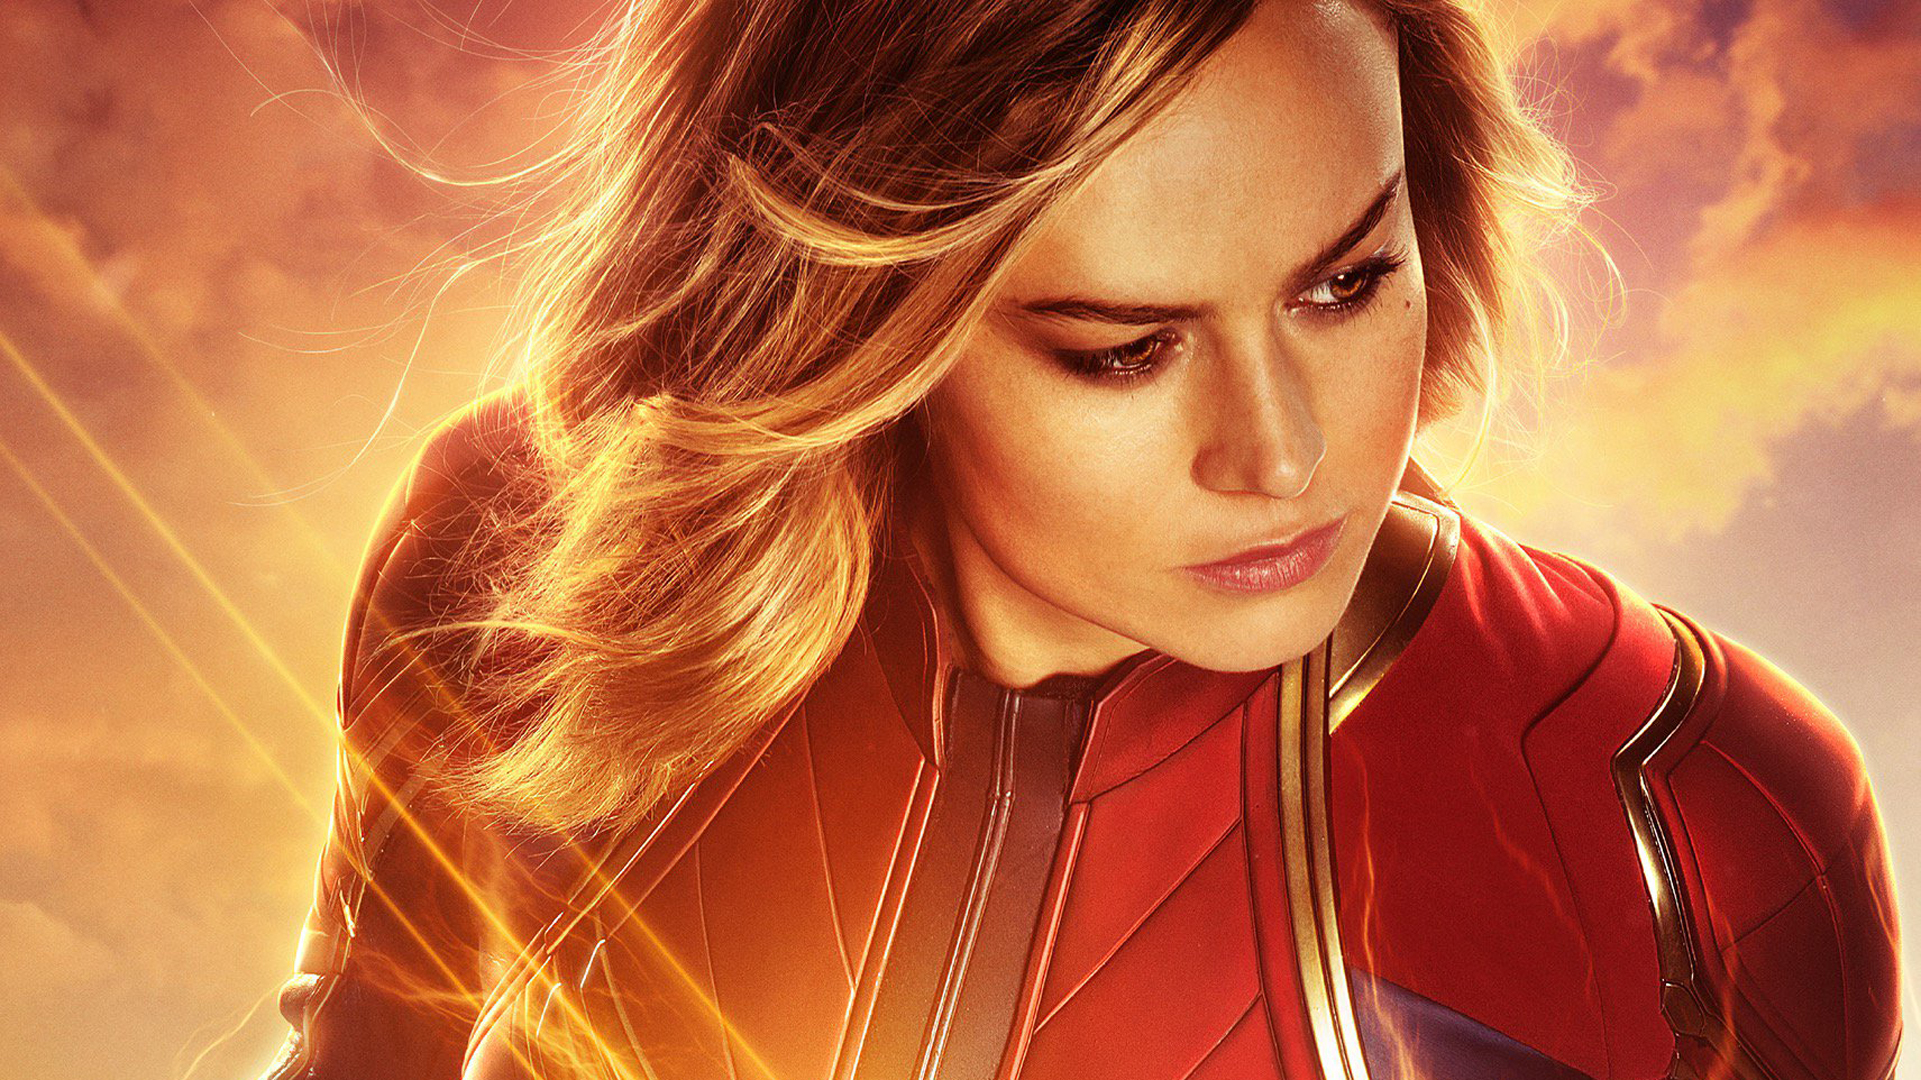 captain marvel 4k 1547507696 - Captain Marvel 4k - movies wallpapers, hd-wallpapers, carol danvers wallpapers, captain marvel wallpapers, captain marvel movie wallpapers, brie larson wallpapers, 2019 movies wallpapers